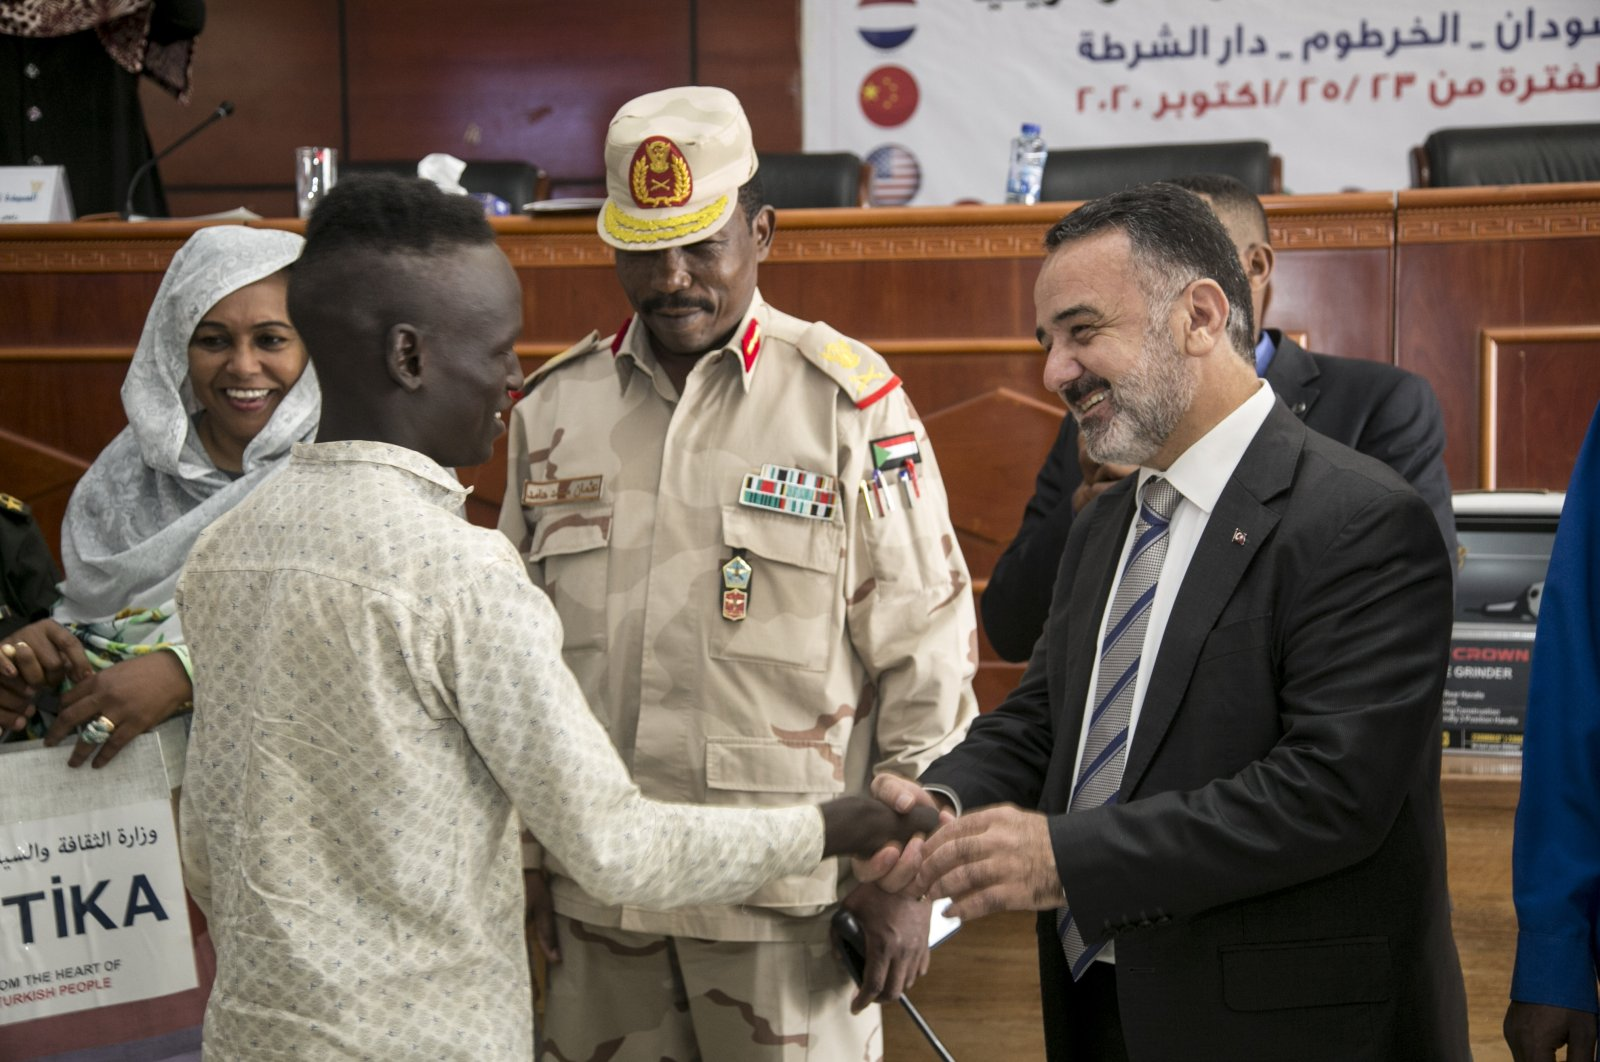 Ahmed Ali (L), one of the youth who benefited from the aid, shakes hands with Turkish Ambassador İrfan Neziroğlu (R), in Khartoum, Sudan, Oct. 25, 2020. (AA Photo)